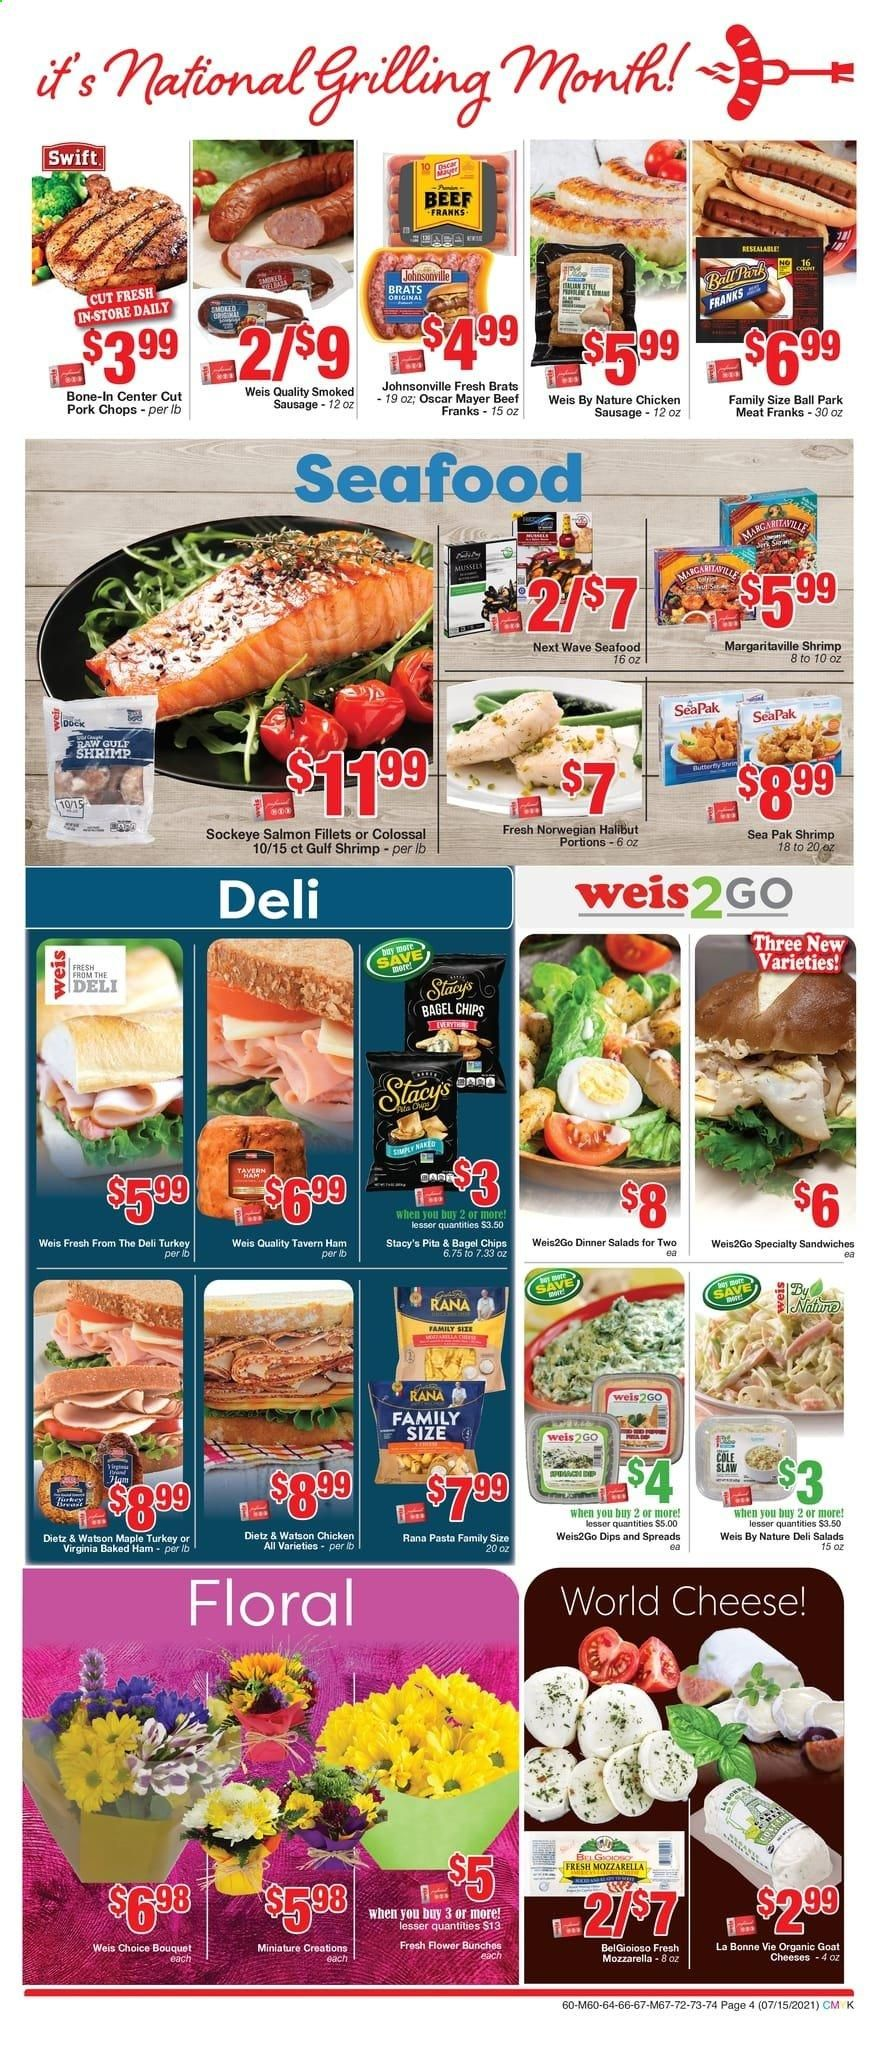 Weis Markets Ad from july 15 to august 19 2021 - Page 4